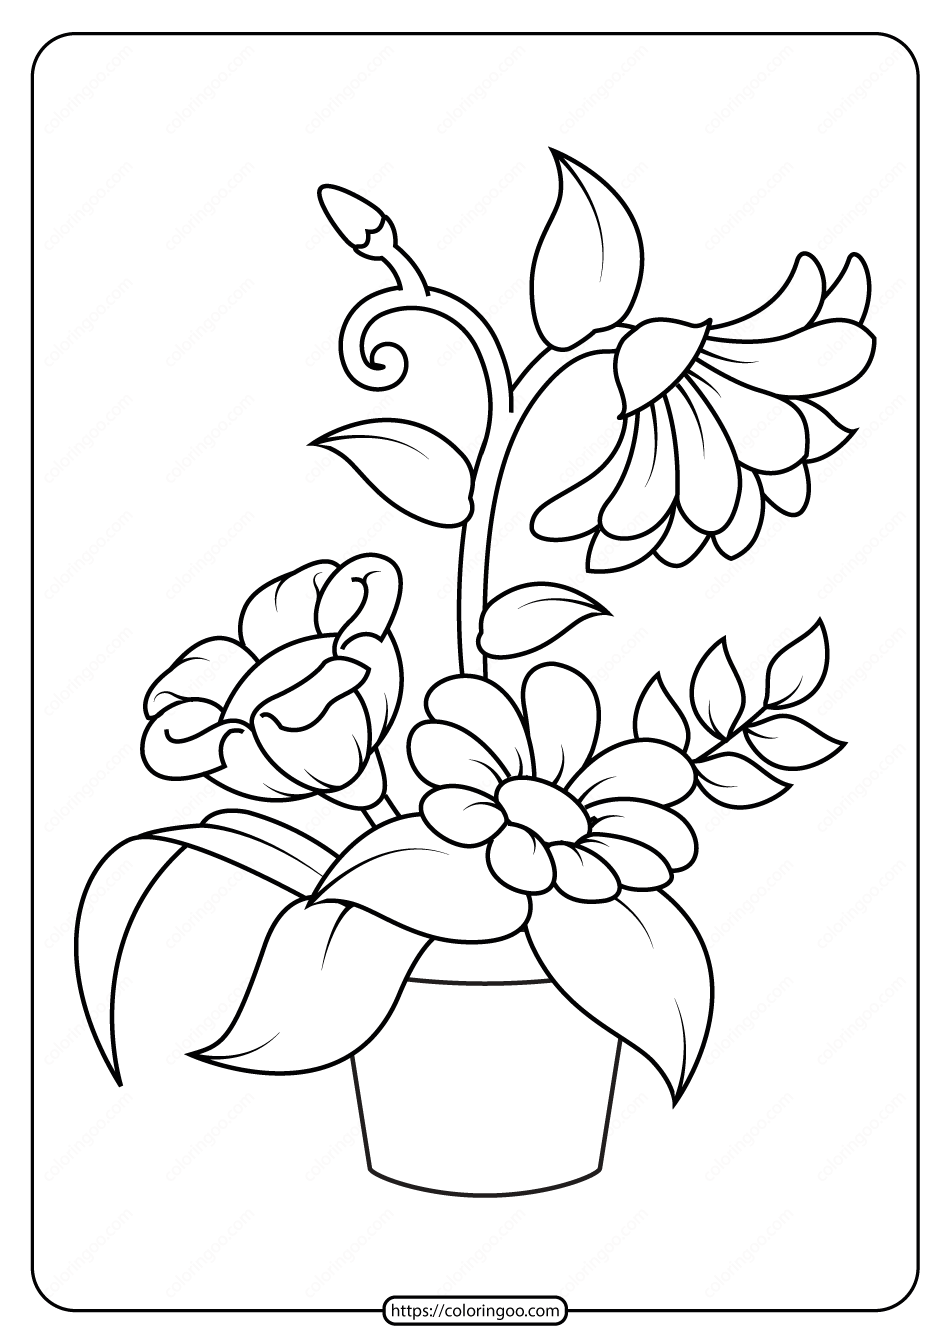 printable flowers coloring pages flower coloring pages coloring pages printable flowers